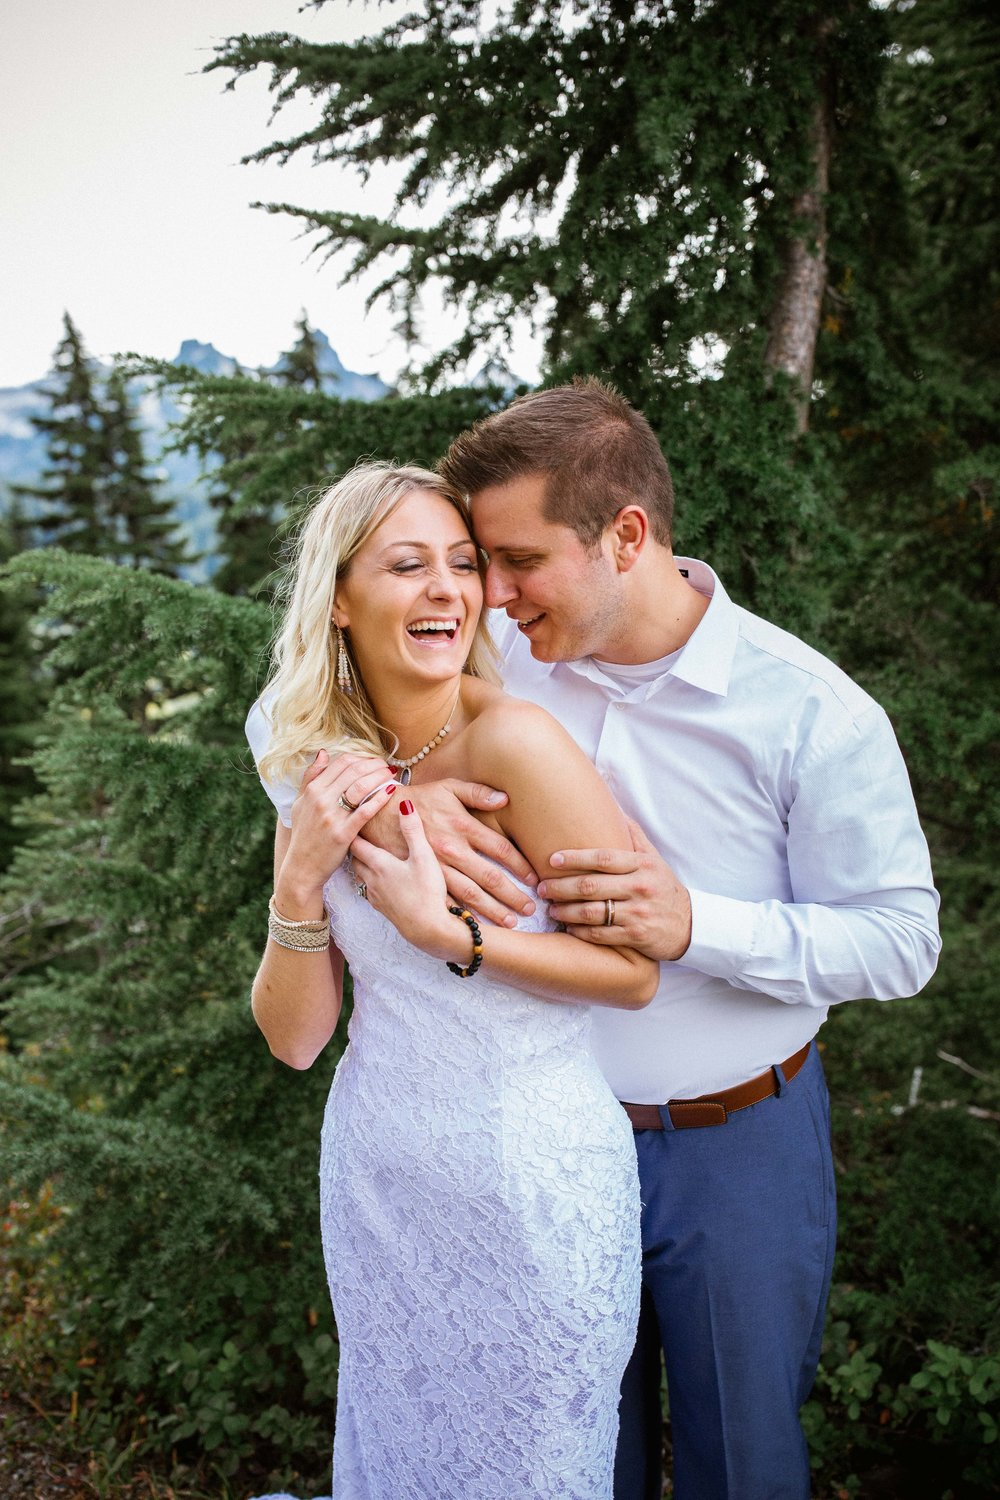 Ashley&Josh-Sneak Peek!BLOG-45.jpg